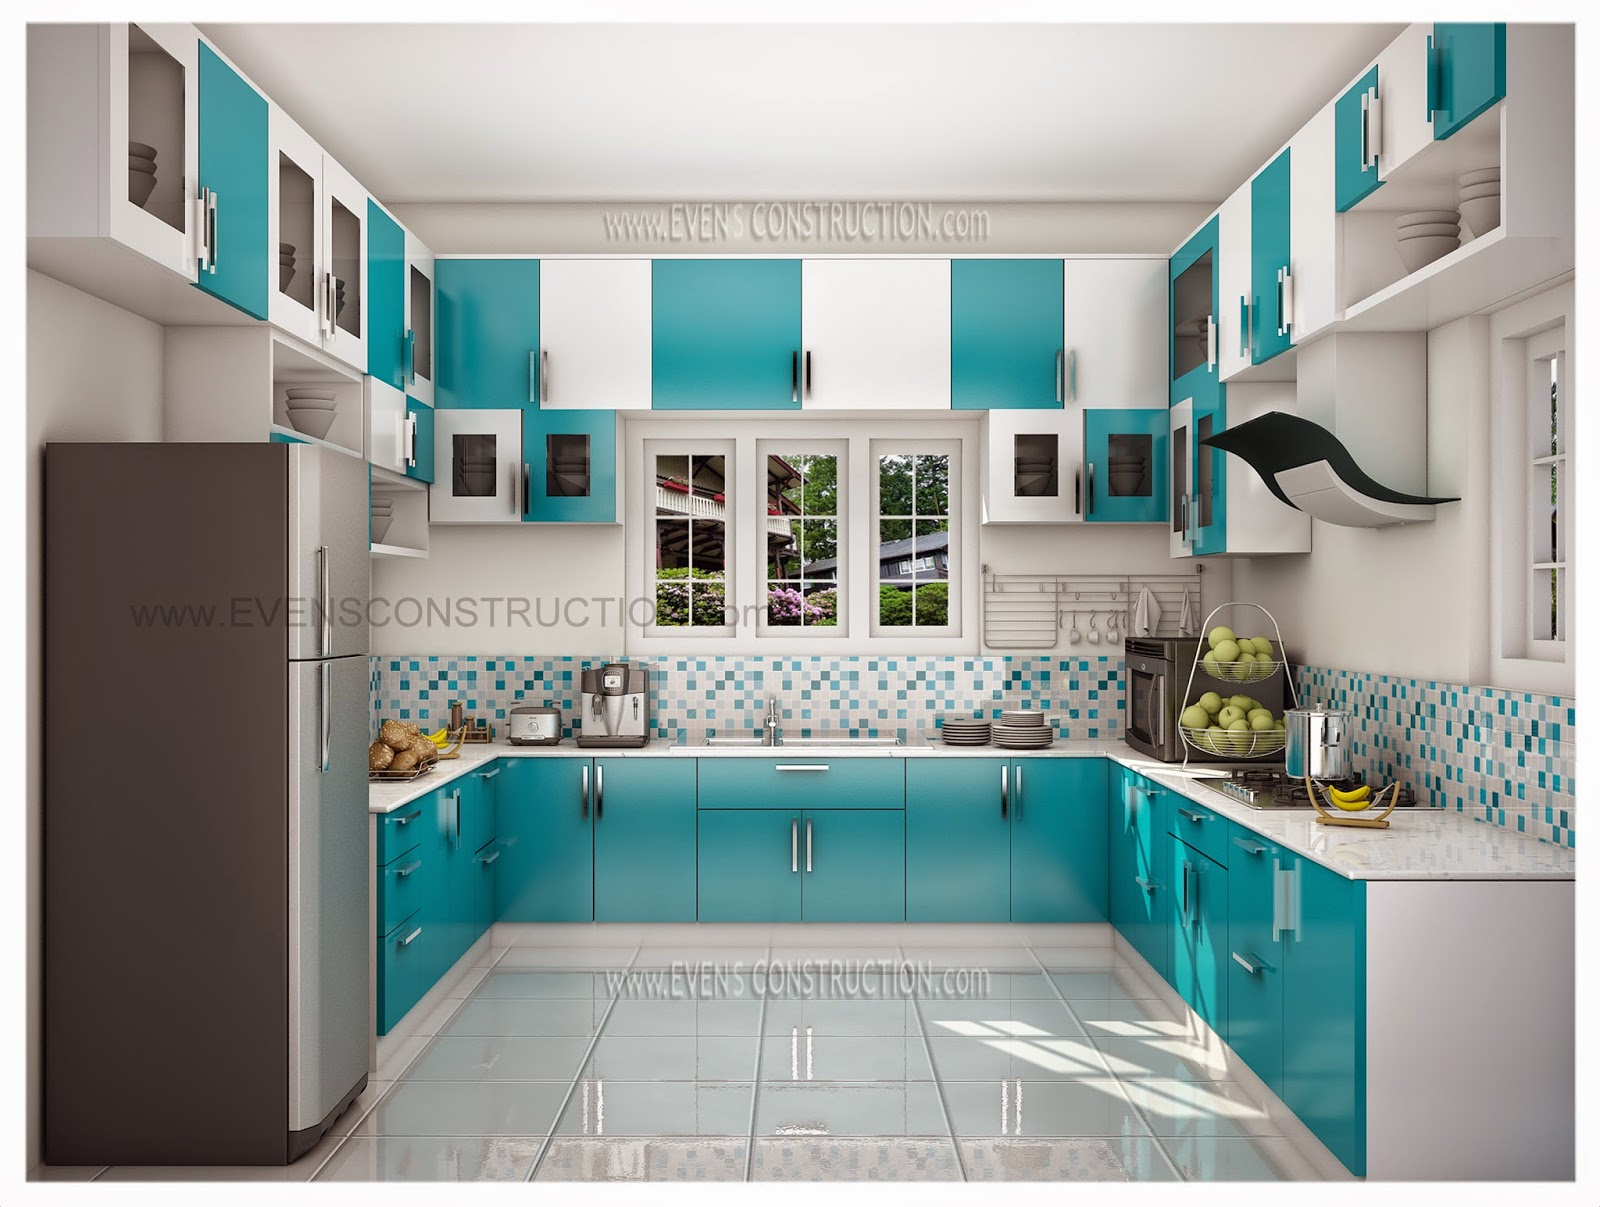 Evens construction pvt ltd beautiful kerala kitchen for Kerala style kitchen photos